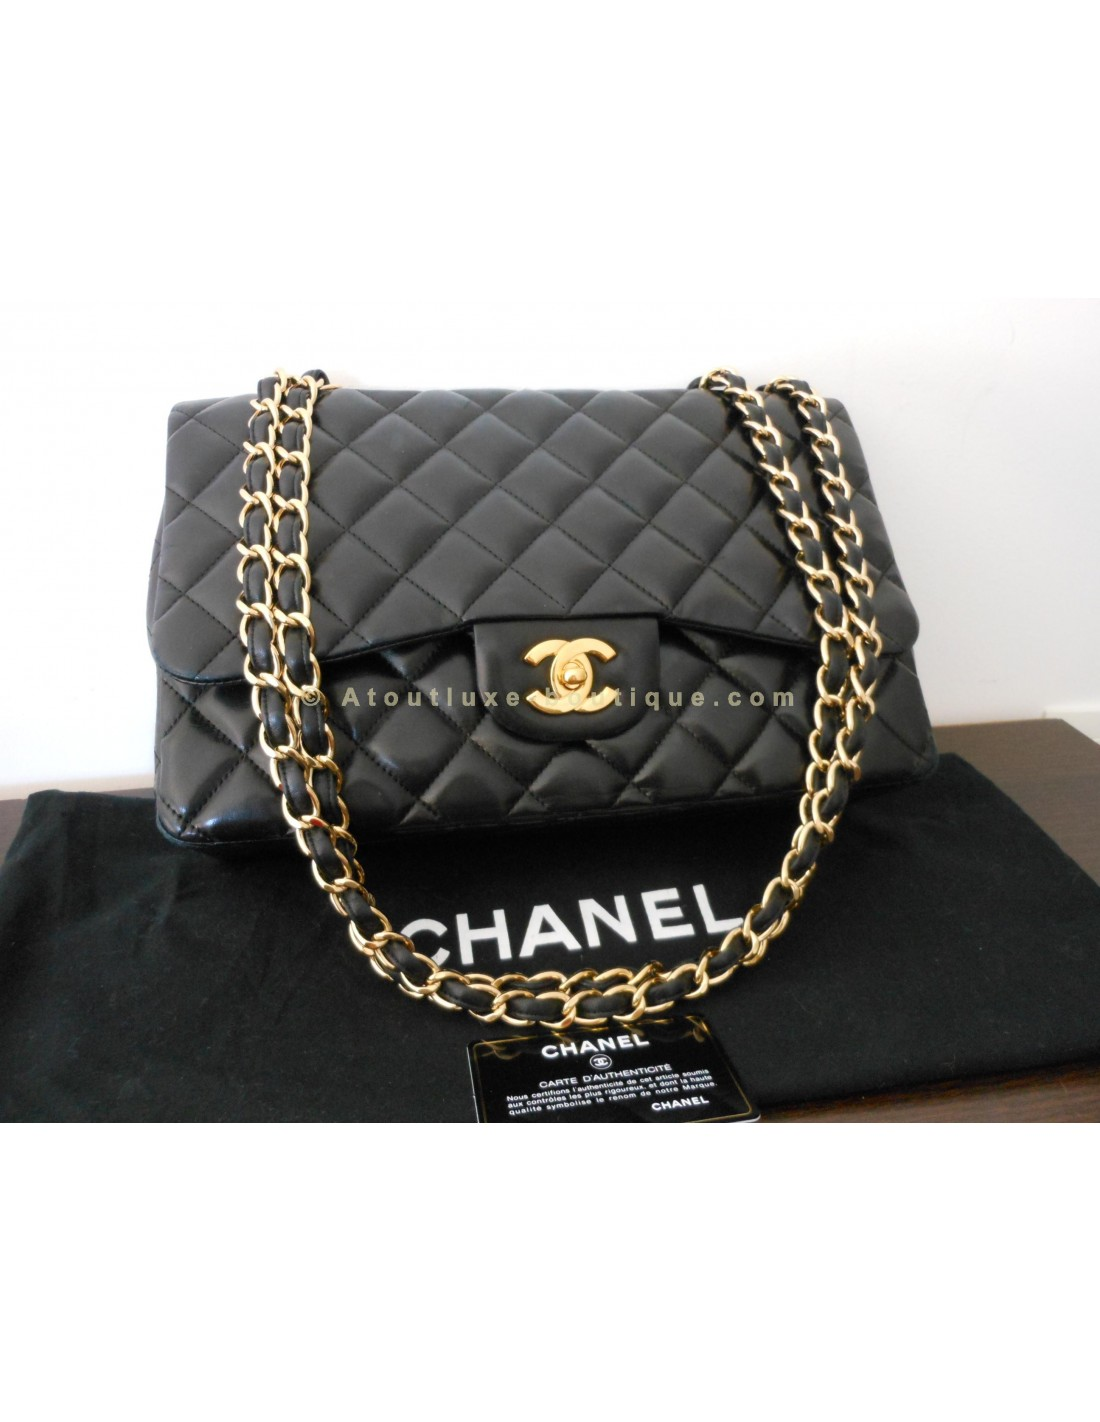 Sac chanel mademoiselle noir grand modele atoutluxe boutique for Sac chanel interieur